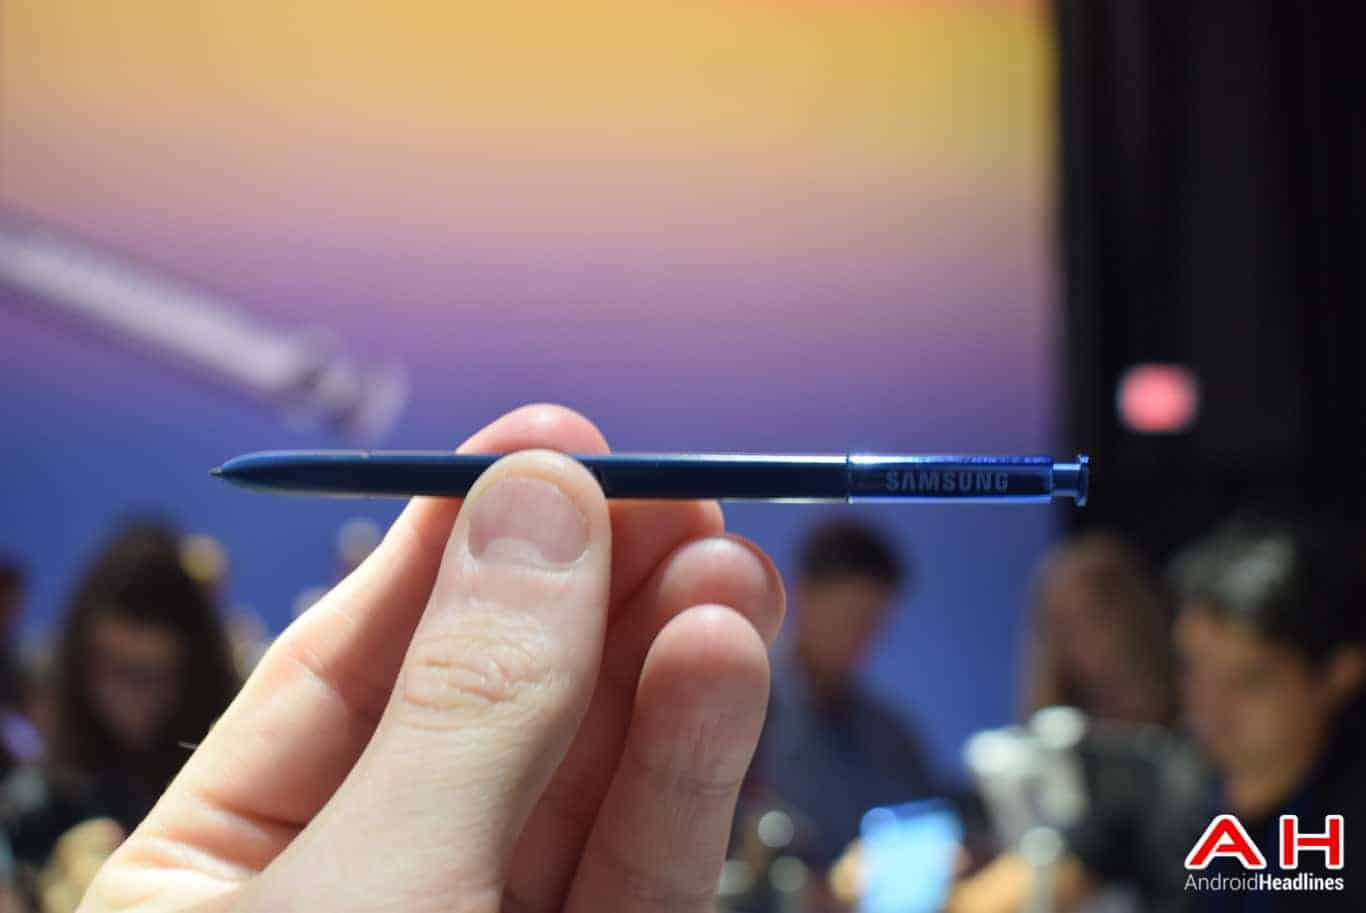 Samsung Galaxy Note 8 AH 5